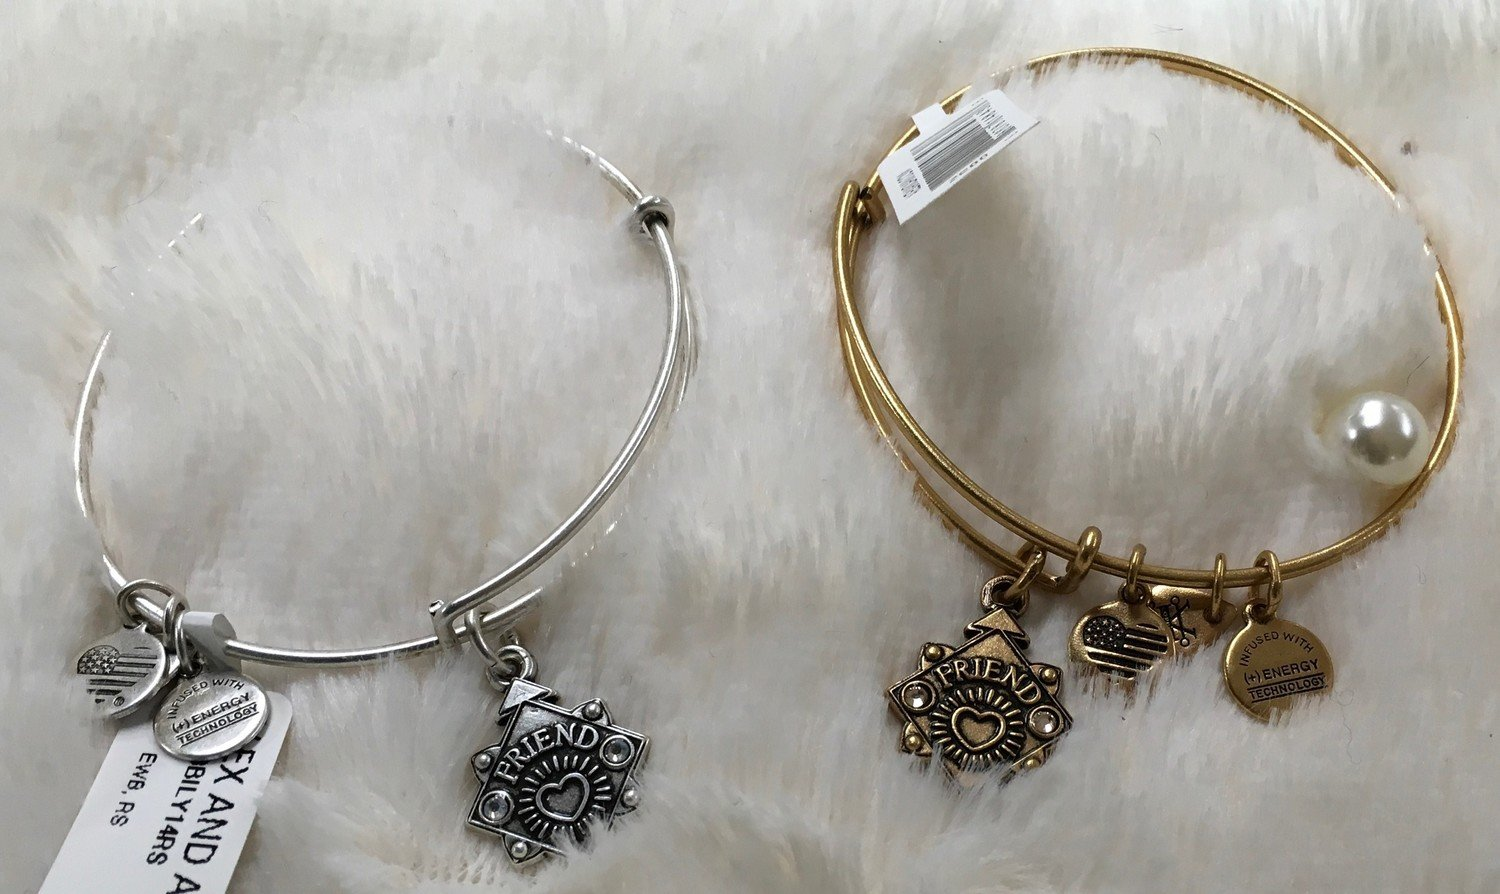 Friend Alex and Ani Bangle Bracelet